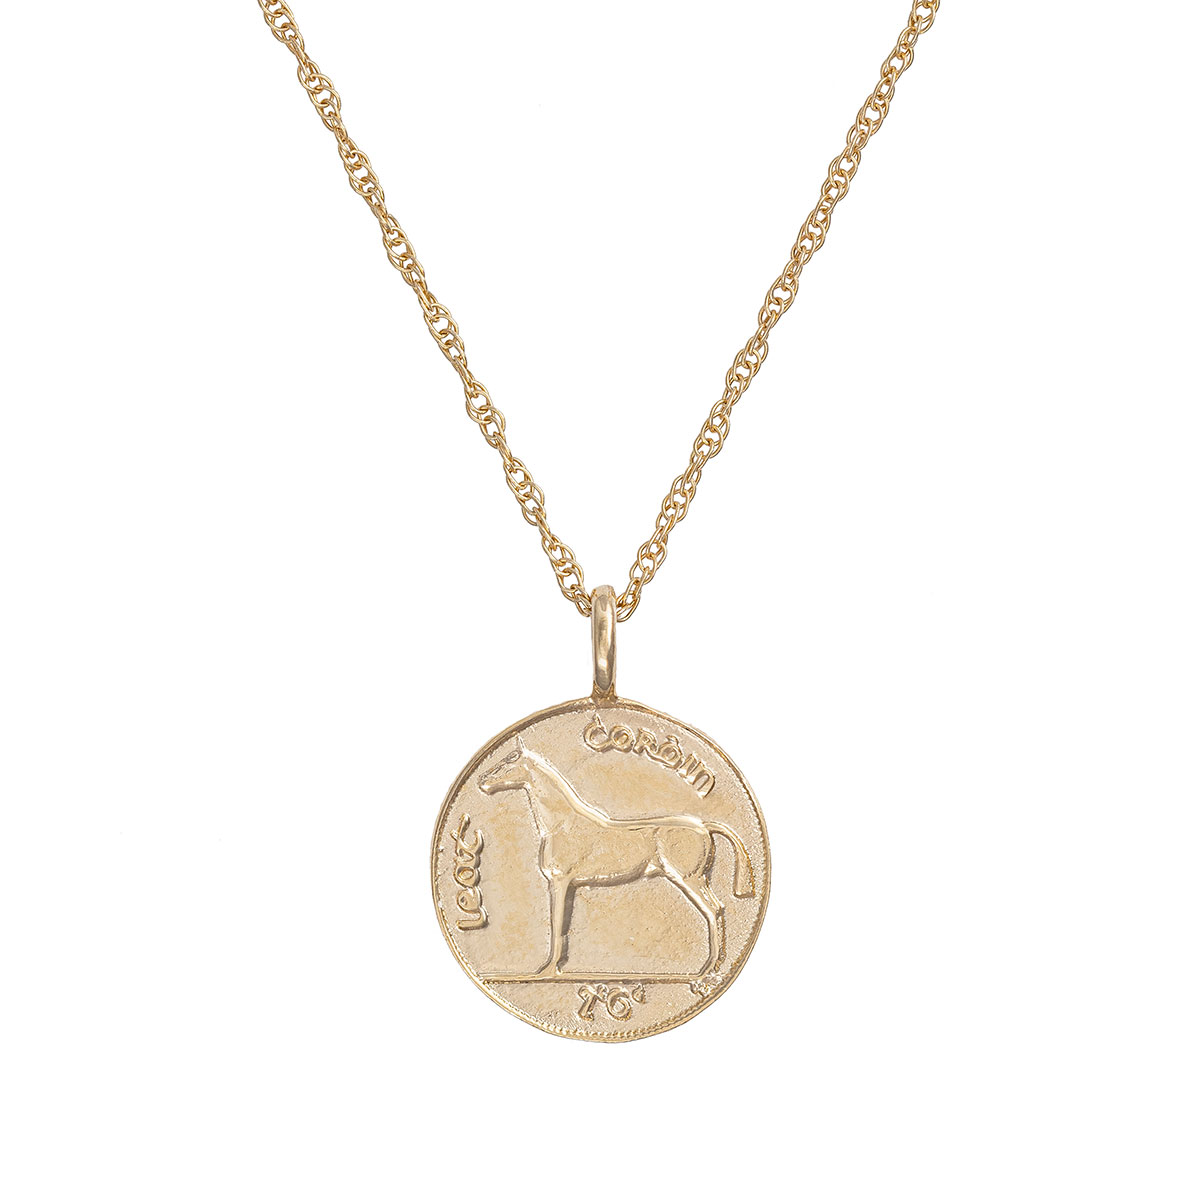 Chupi-Solid-Gold-Worth-Your-Weight-in-Gold-1928-Horse-Coin-Necklace-1